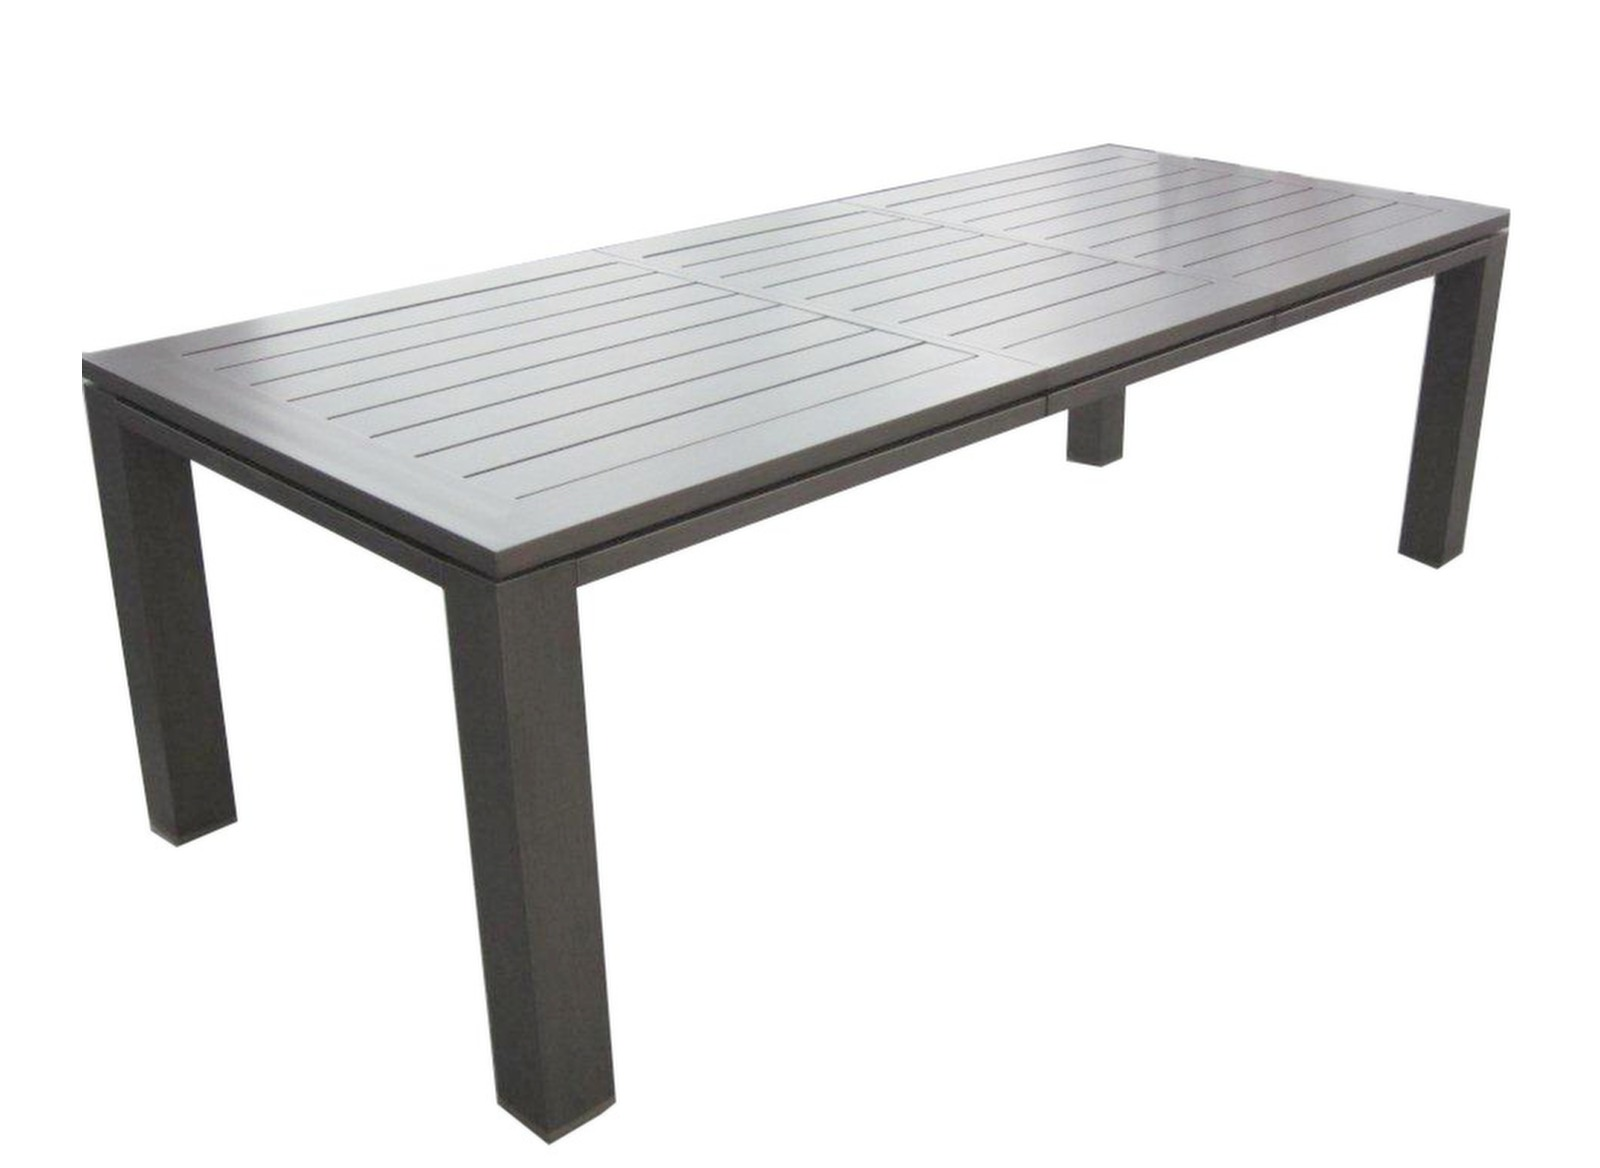 Table Jardin Aluminium Extensible. Best Table Jardin Aluminium Que ...